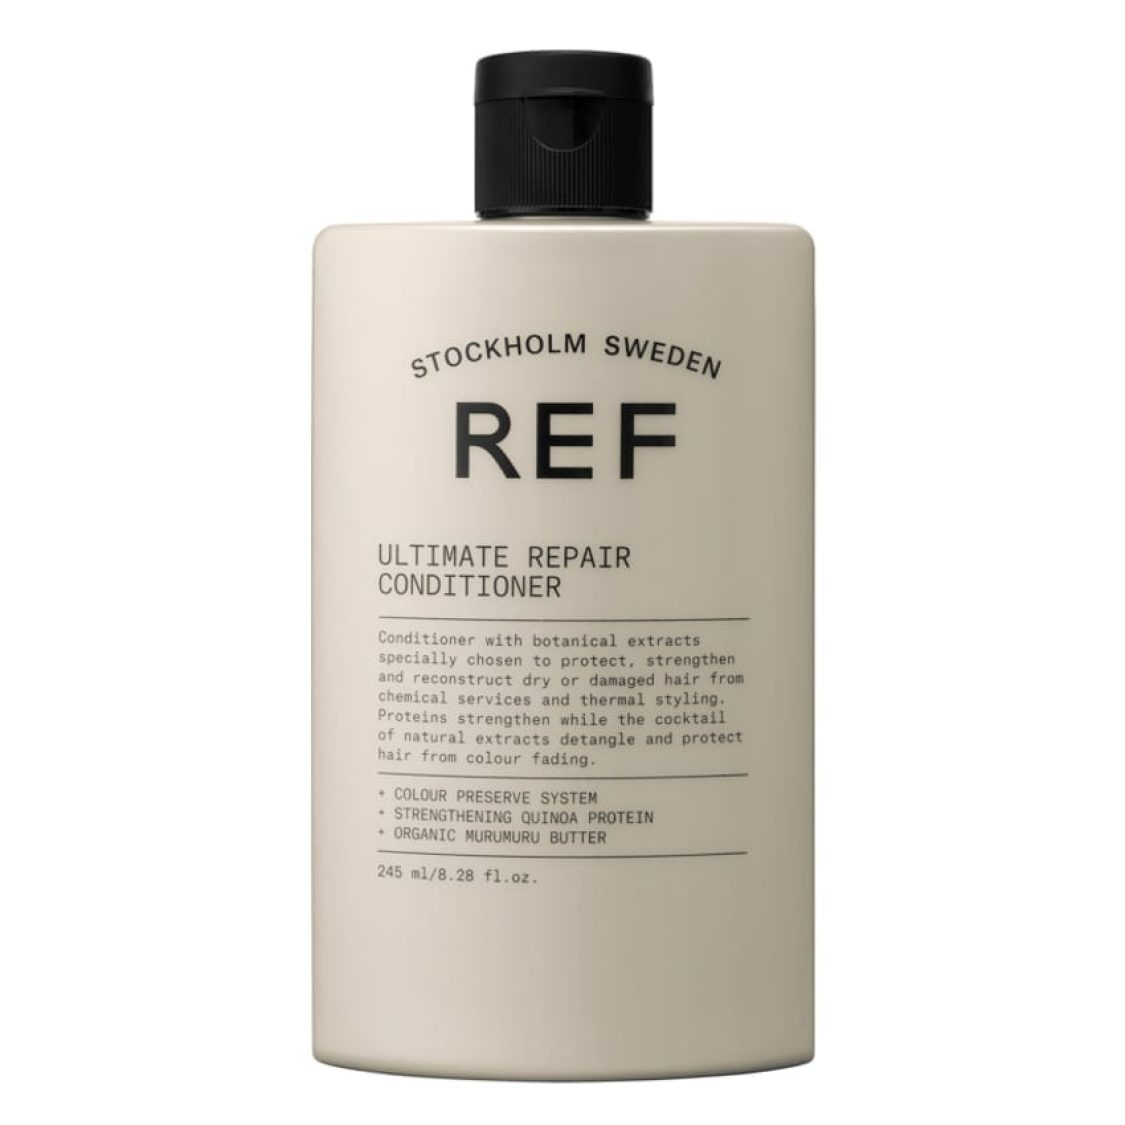 REF - Ultimate Repair Conditioner 245ml